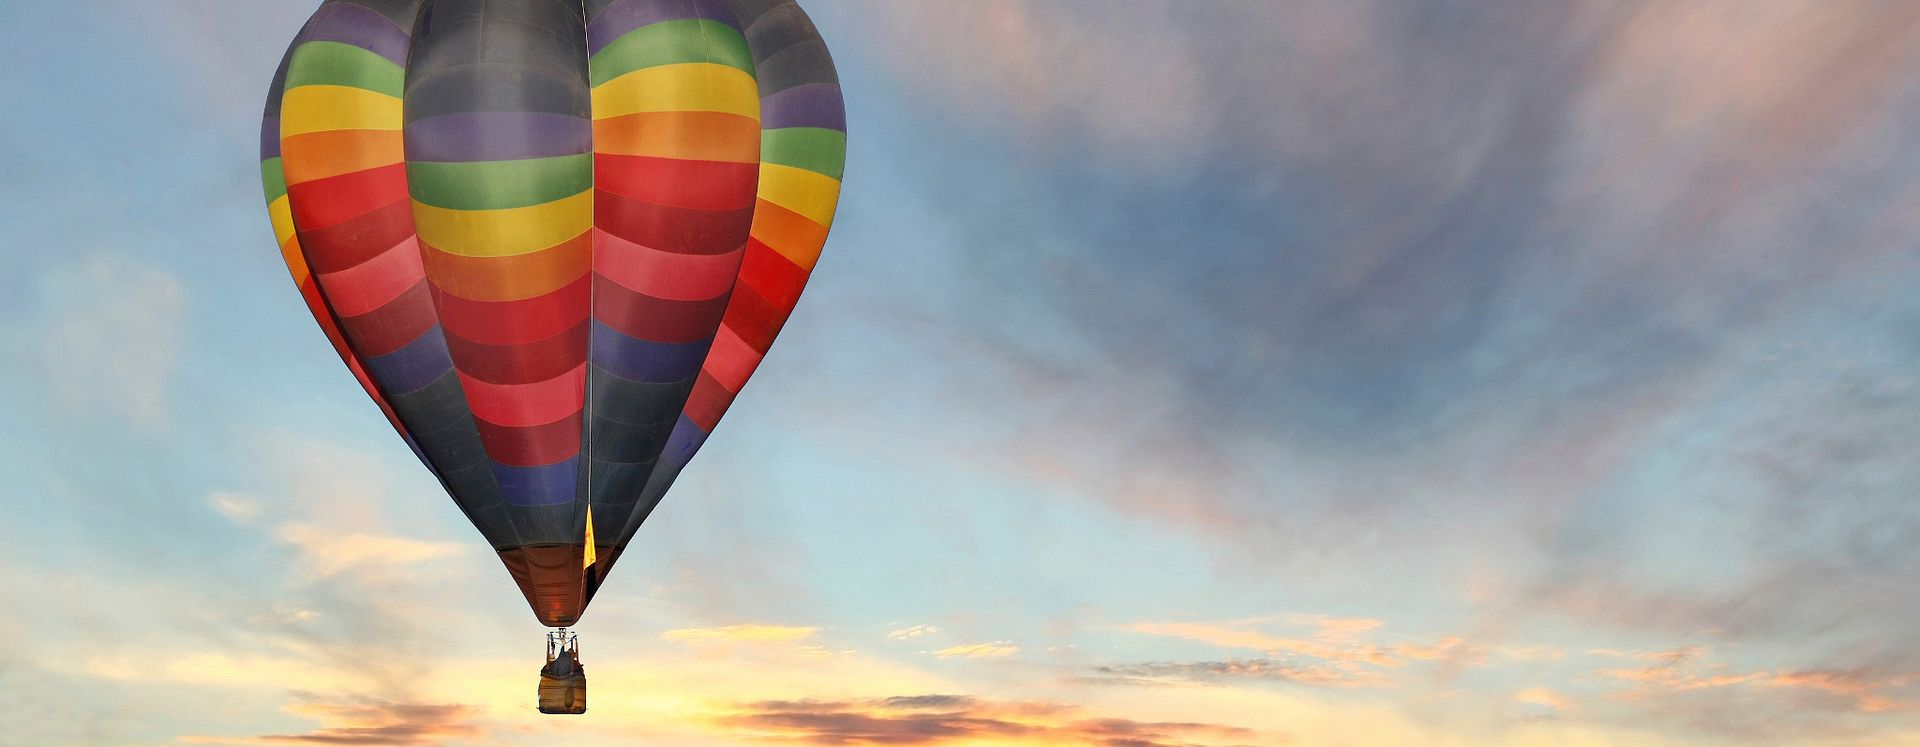 Sunrise lights up a colorful hot air balloon as it floats in the morning sky